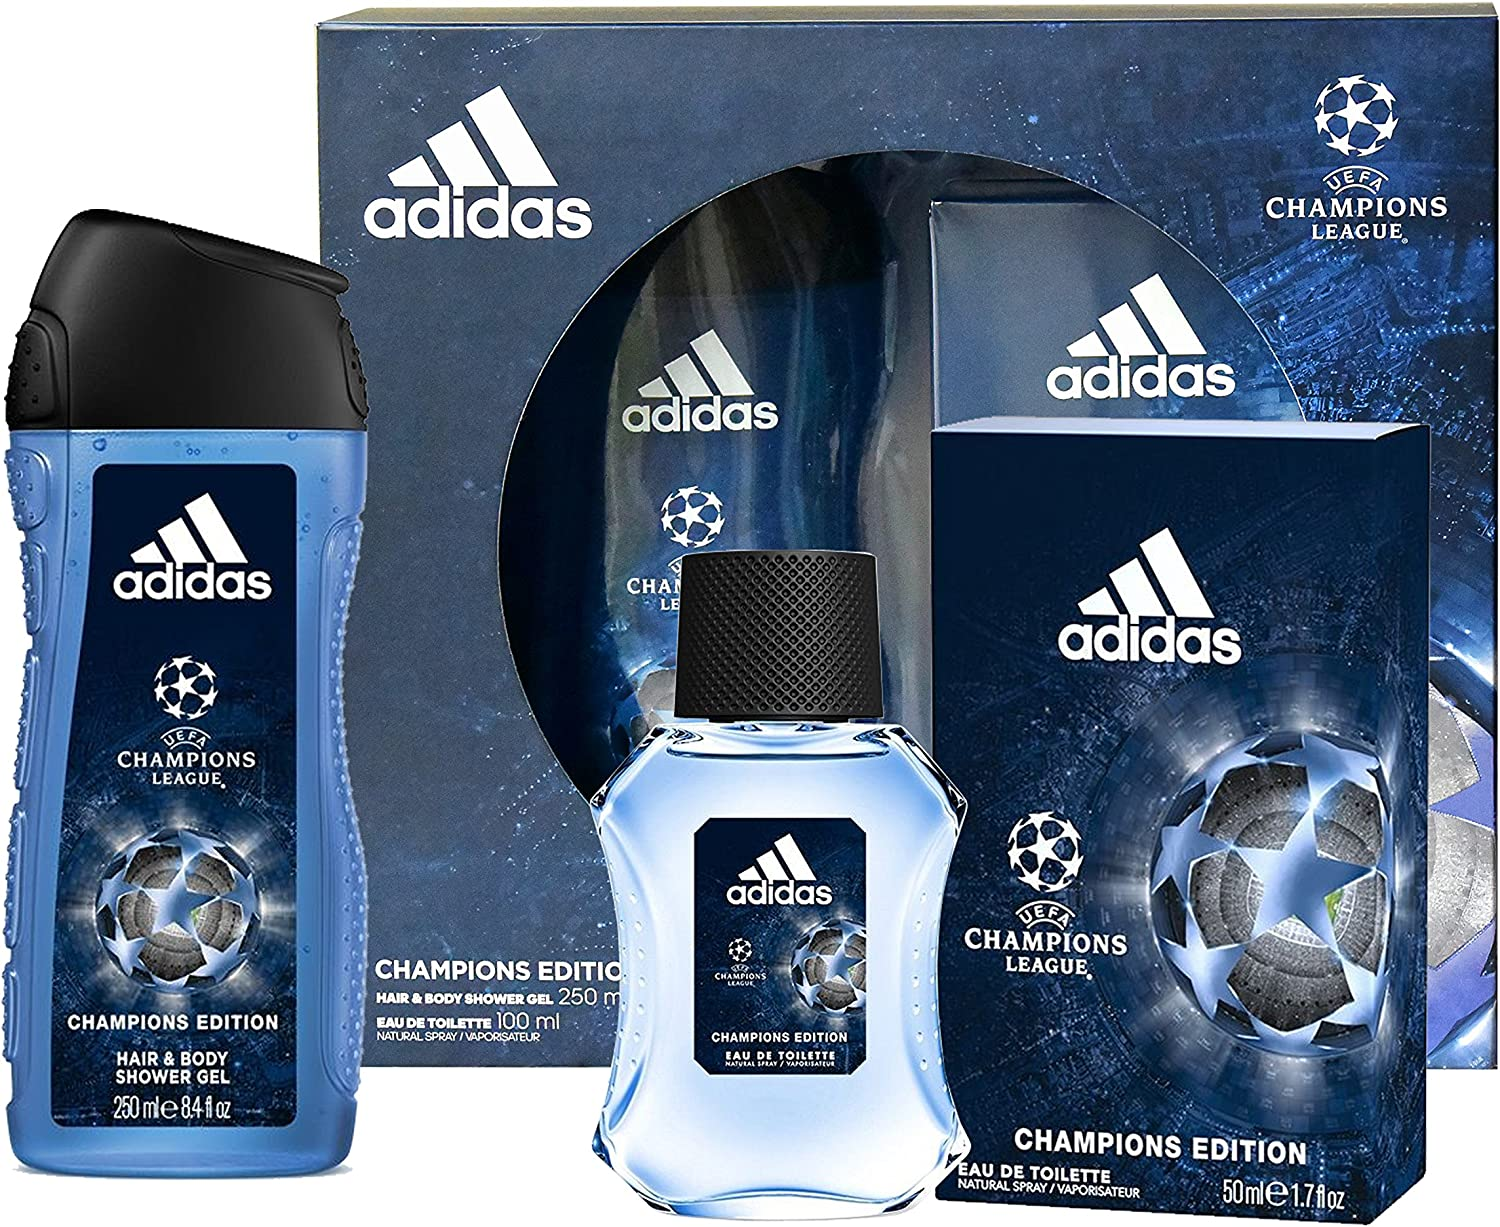 Coffret hombre Adidas Champions League 2017 – Eau de Toilette 100 ml y gel de ducha 250 ml: Amazon.es: Belleza